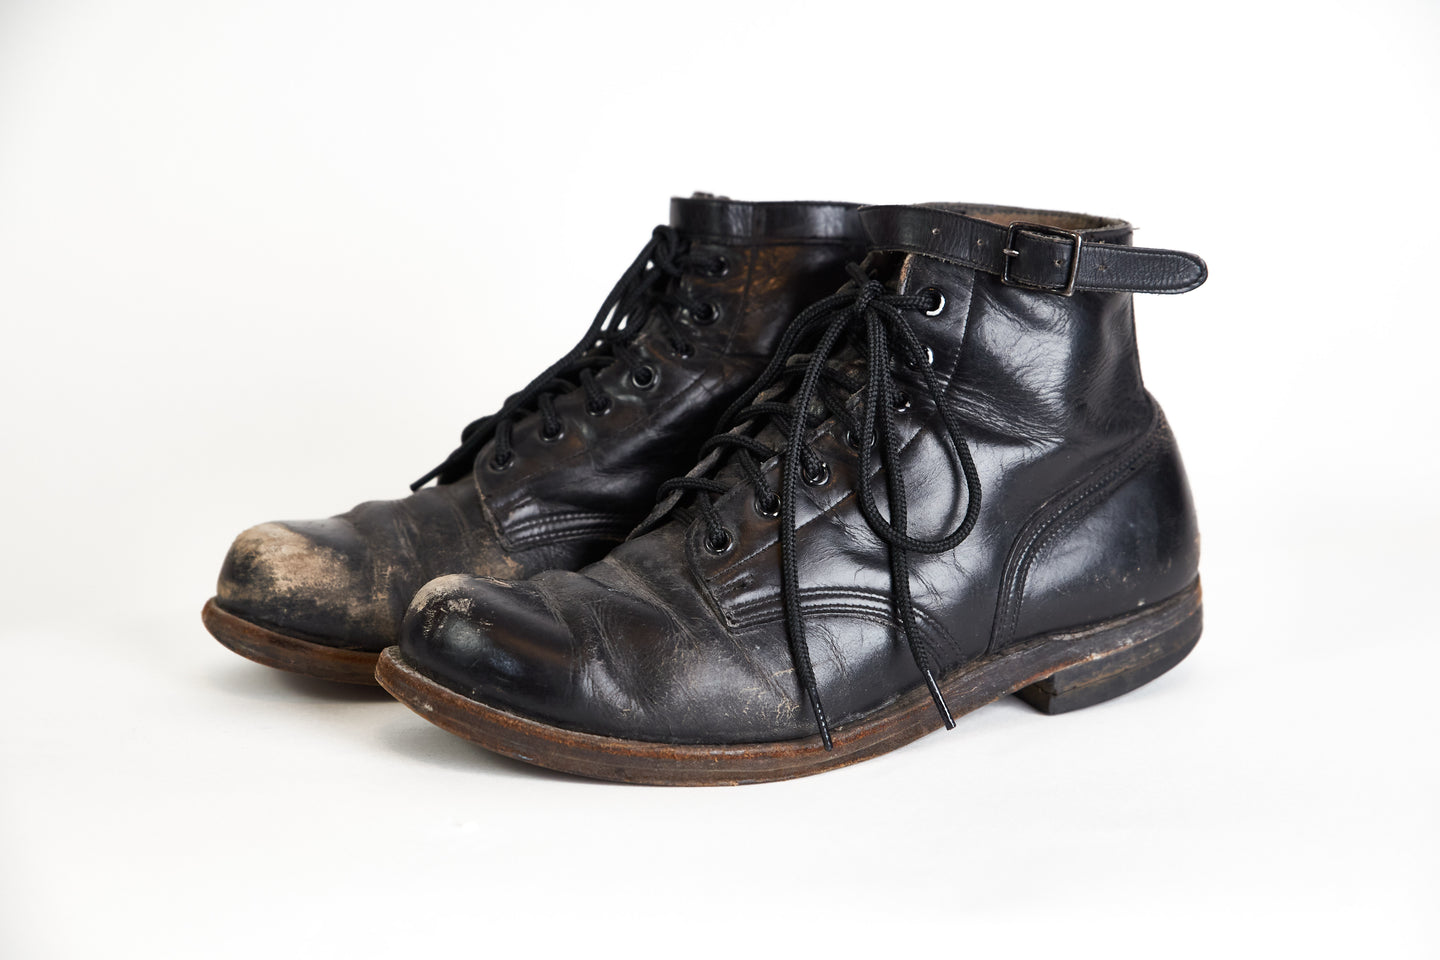 1950s Motorcycle Boots